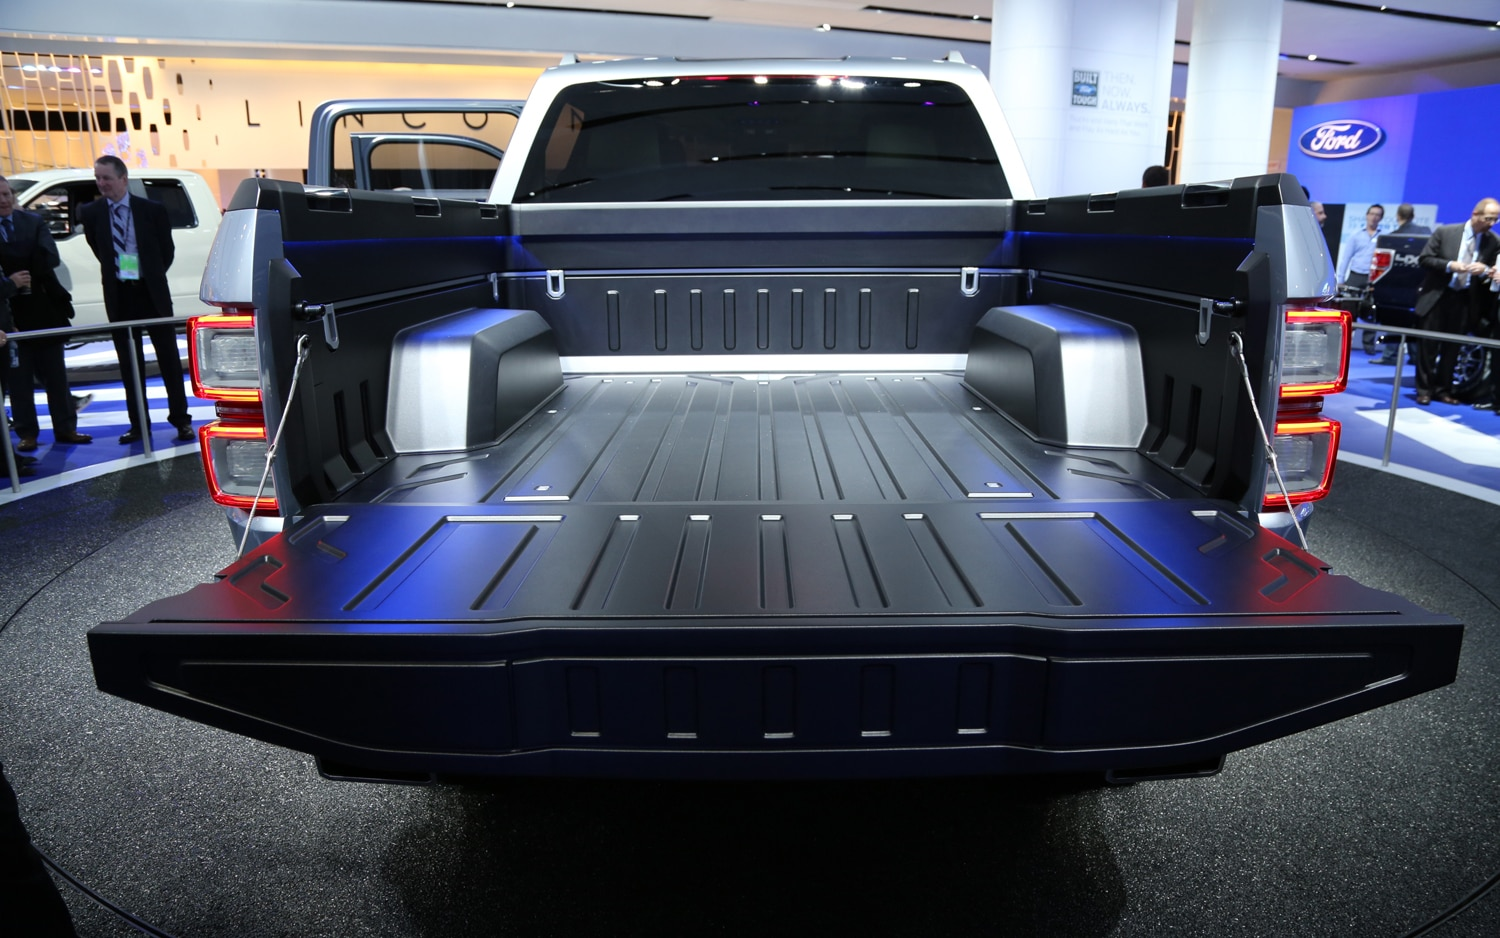 Ford Atlas Concept Rear Truck Bed